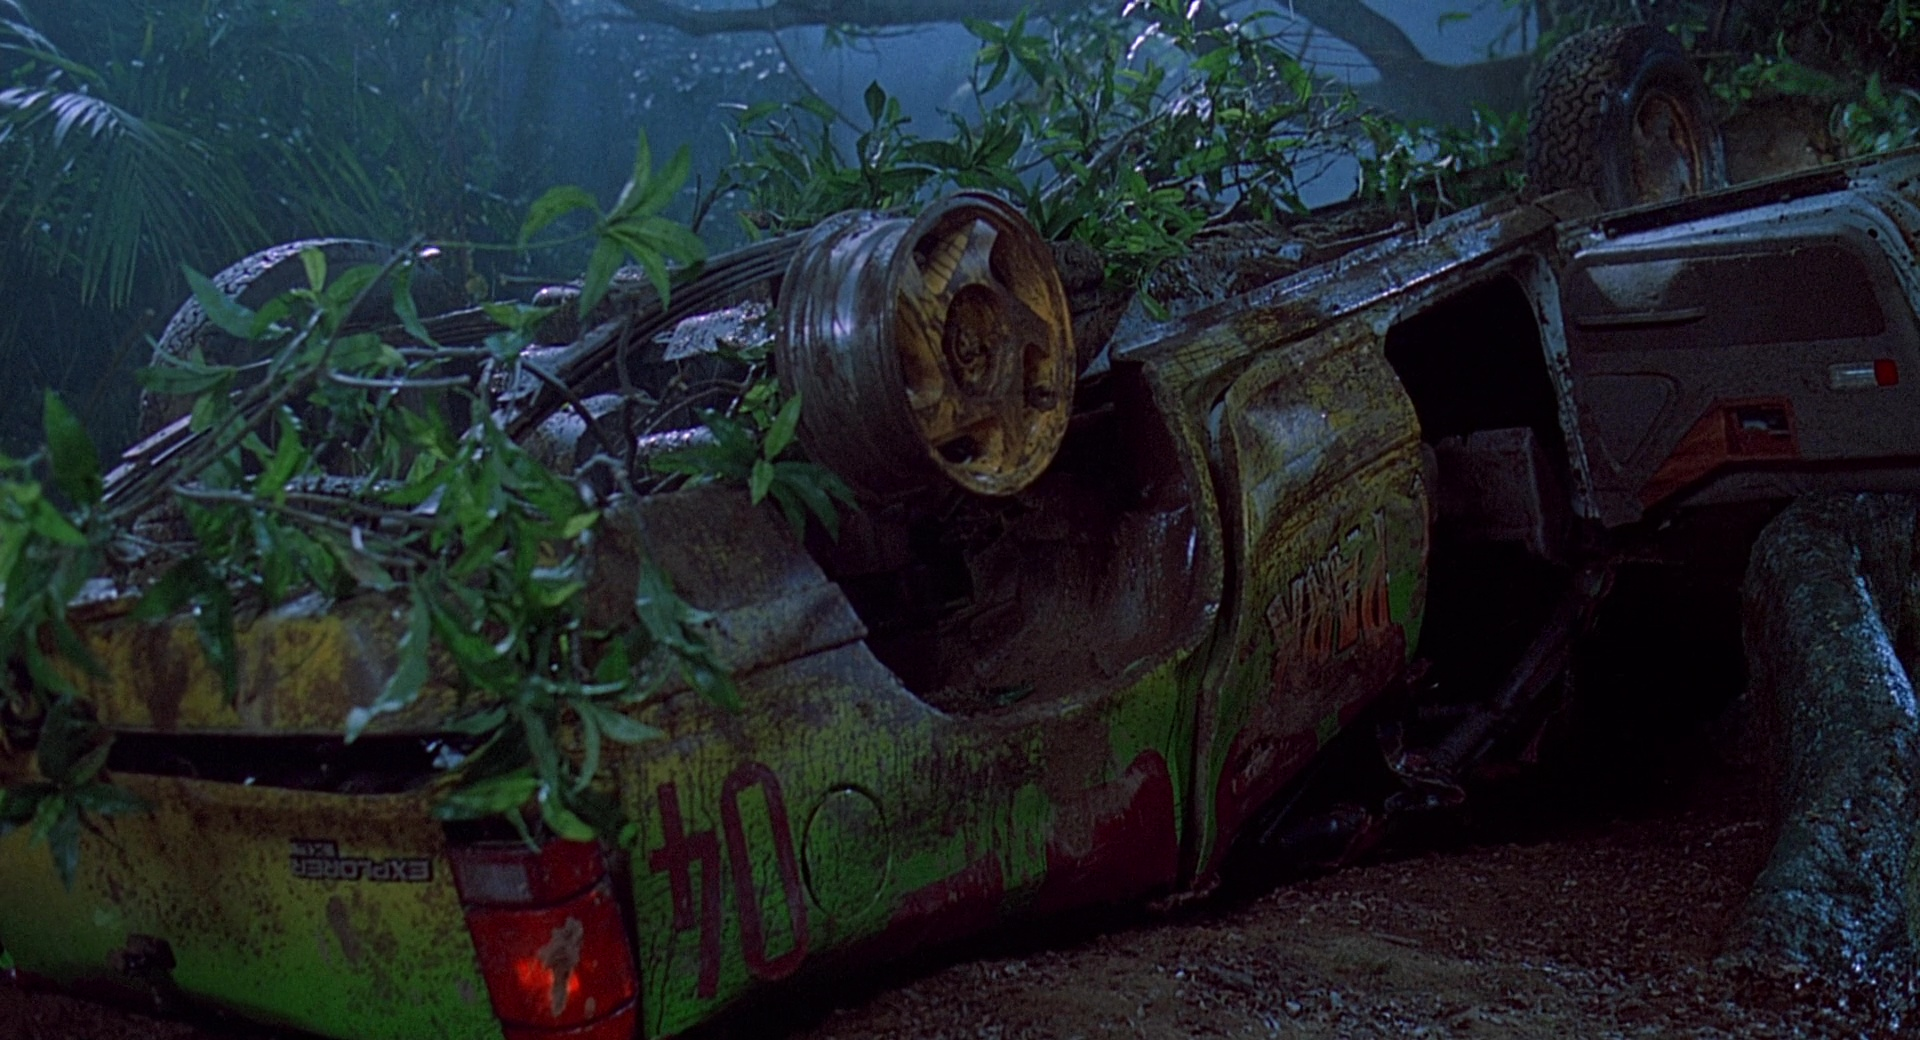 Ford Explorer Cars In Jurassic Park on 1993 Dodge Grand Caravan